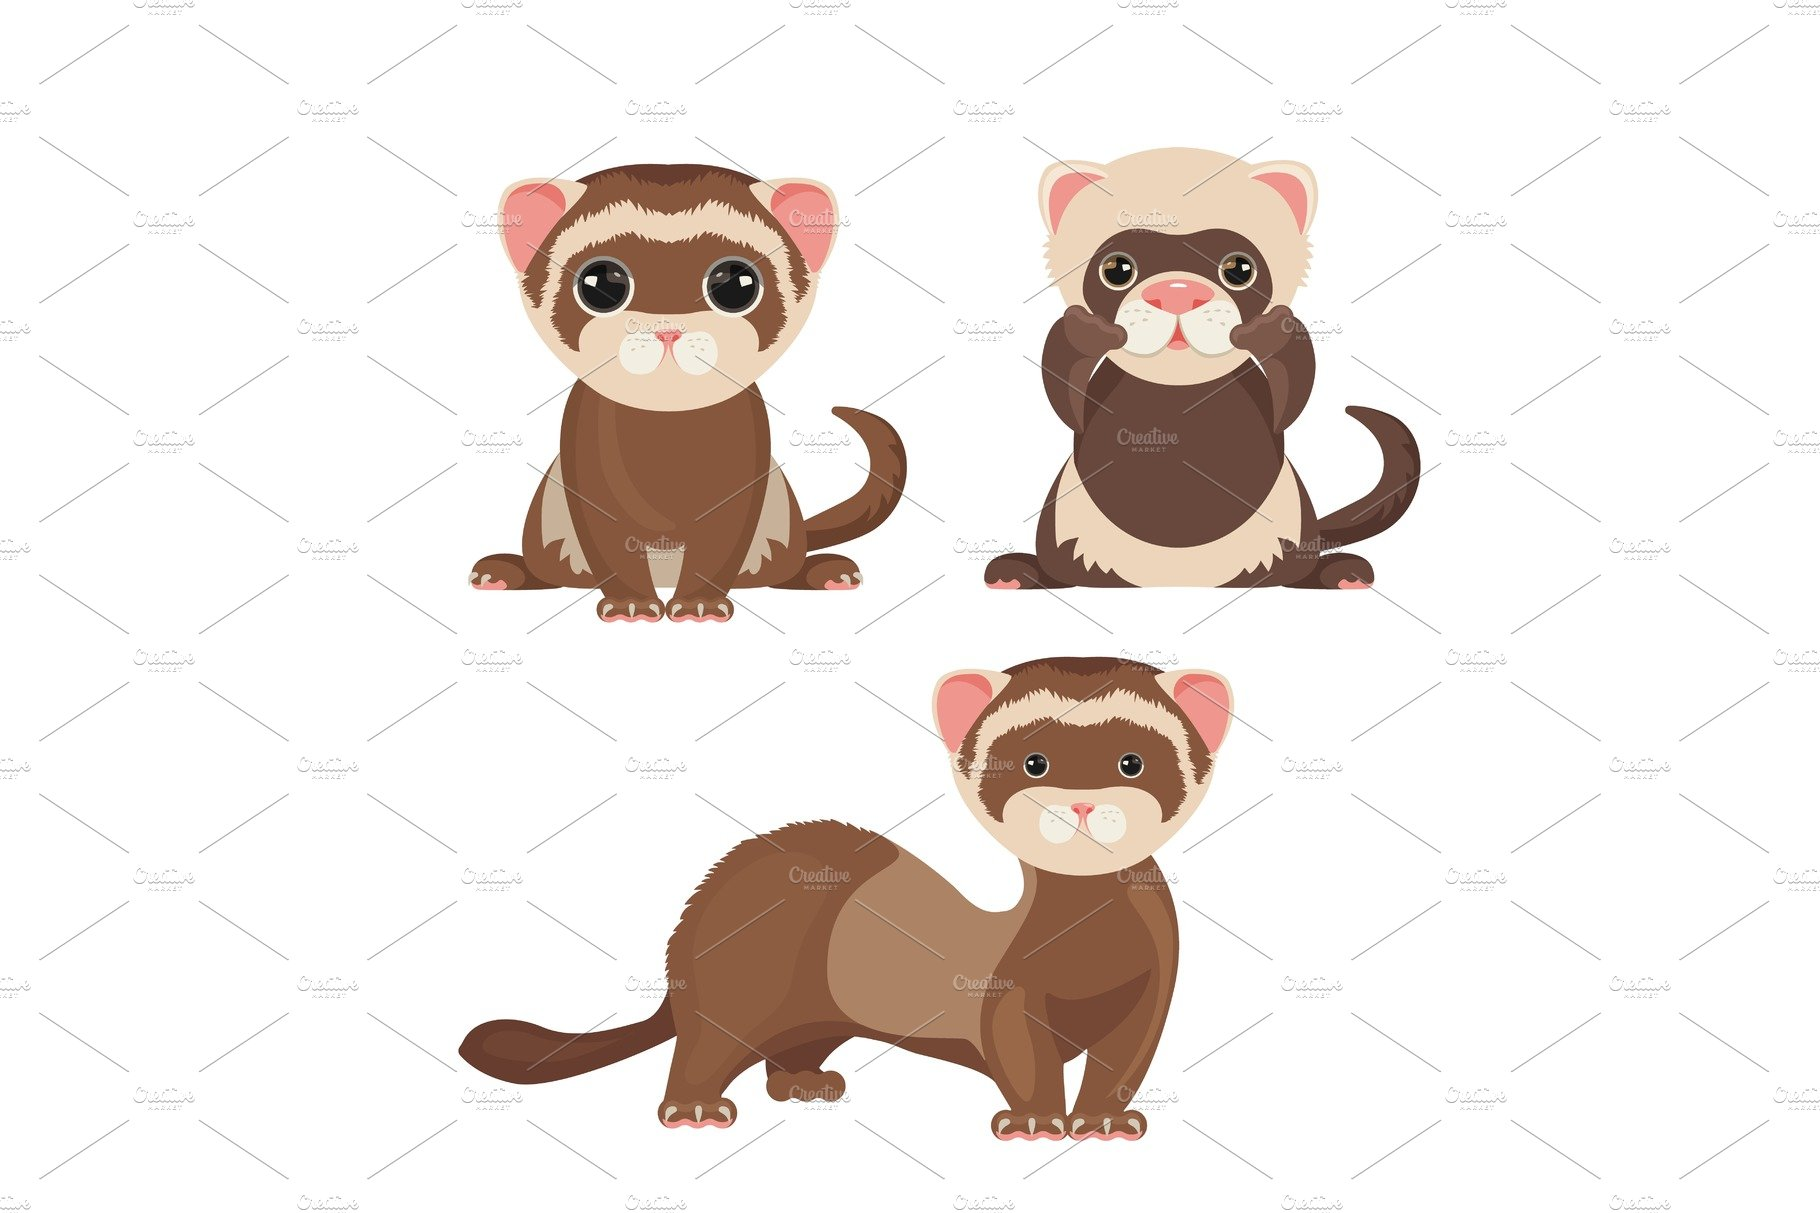 Ferret polecats in cartoon style, funny emoji faces vector